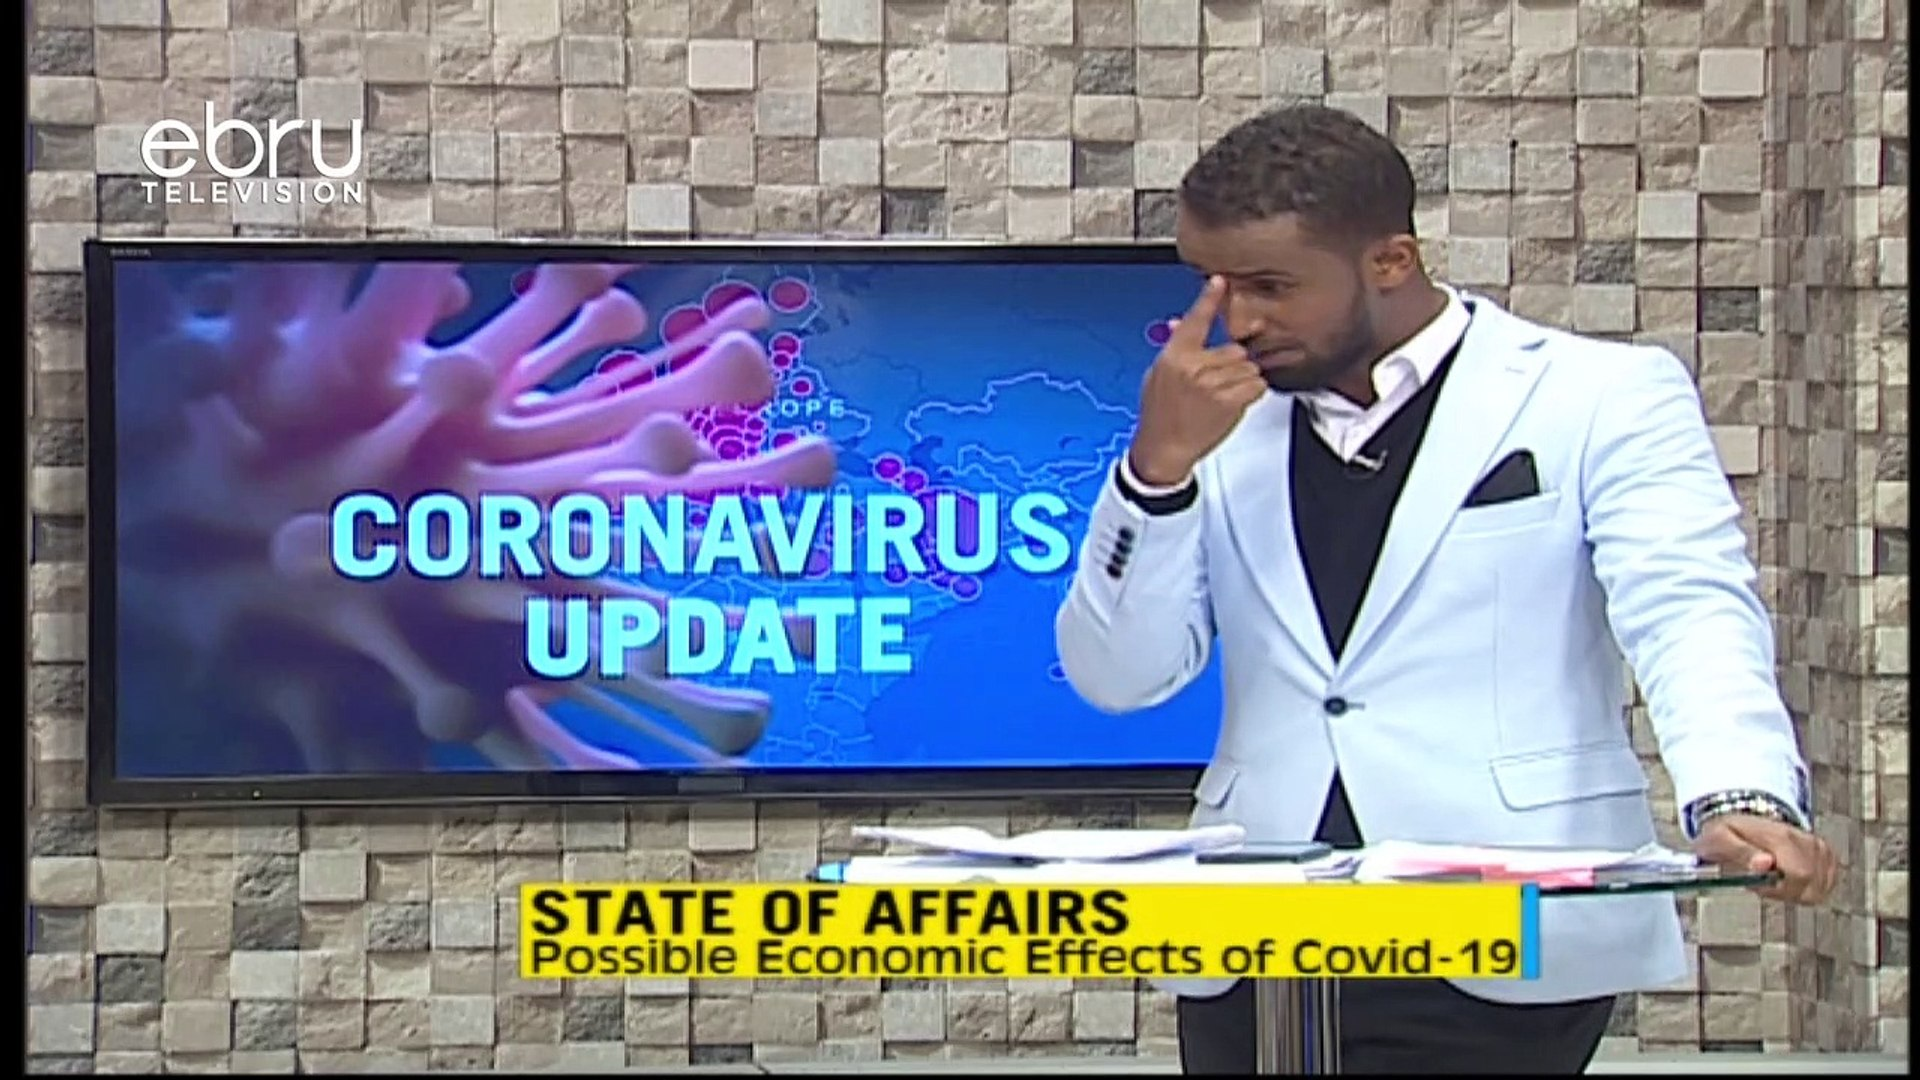 The Looming Lockdown Has Become More Of A Menace Than Corona Virus ~ Dr. Justus Juma